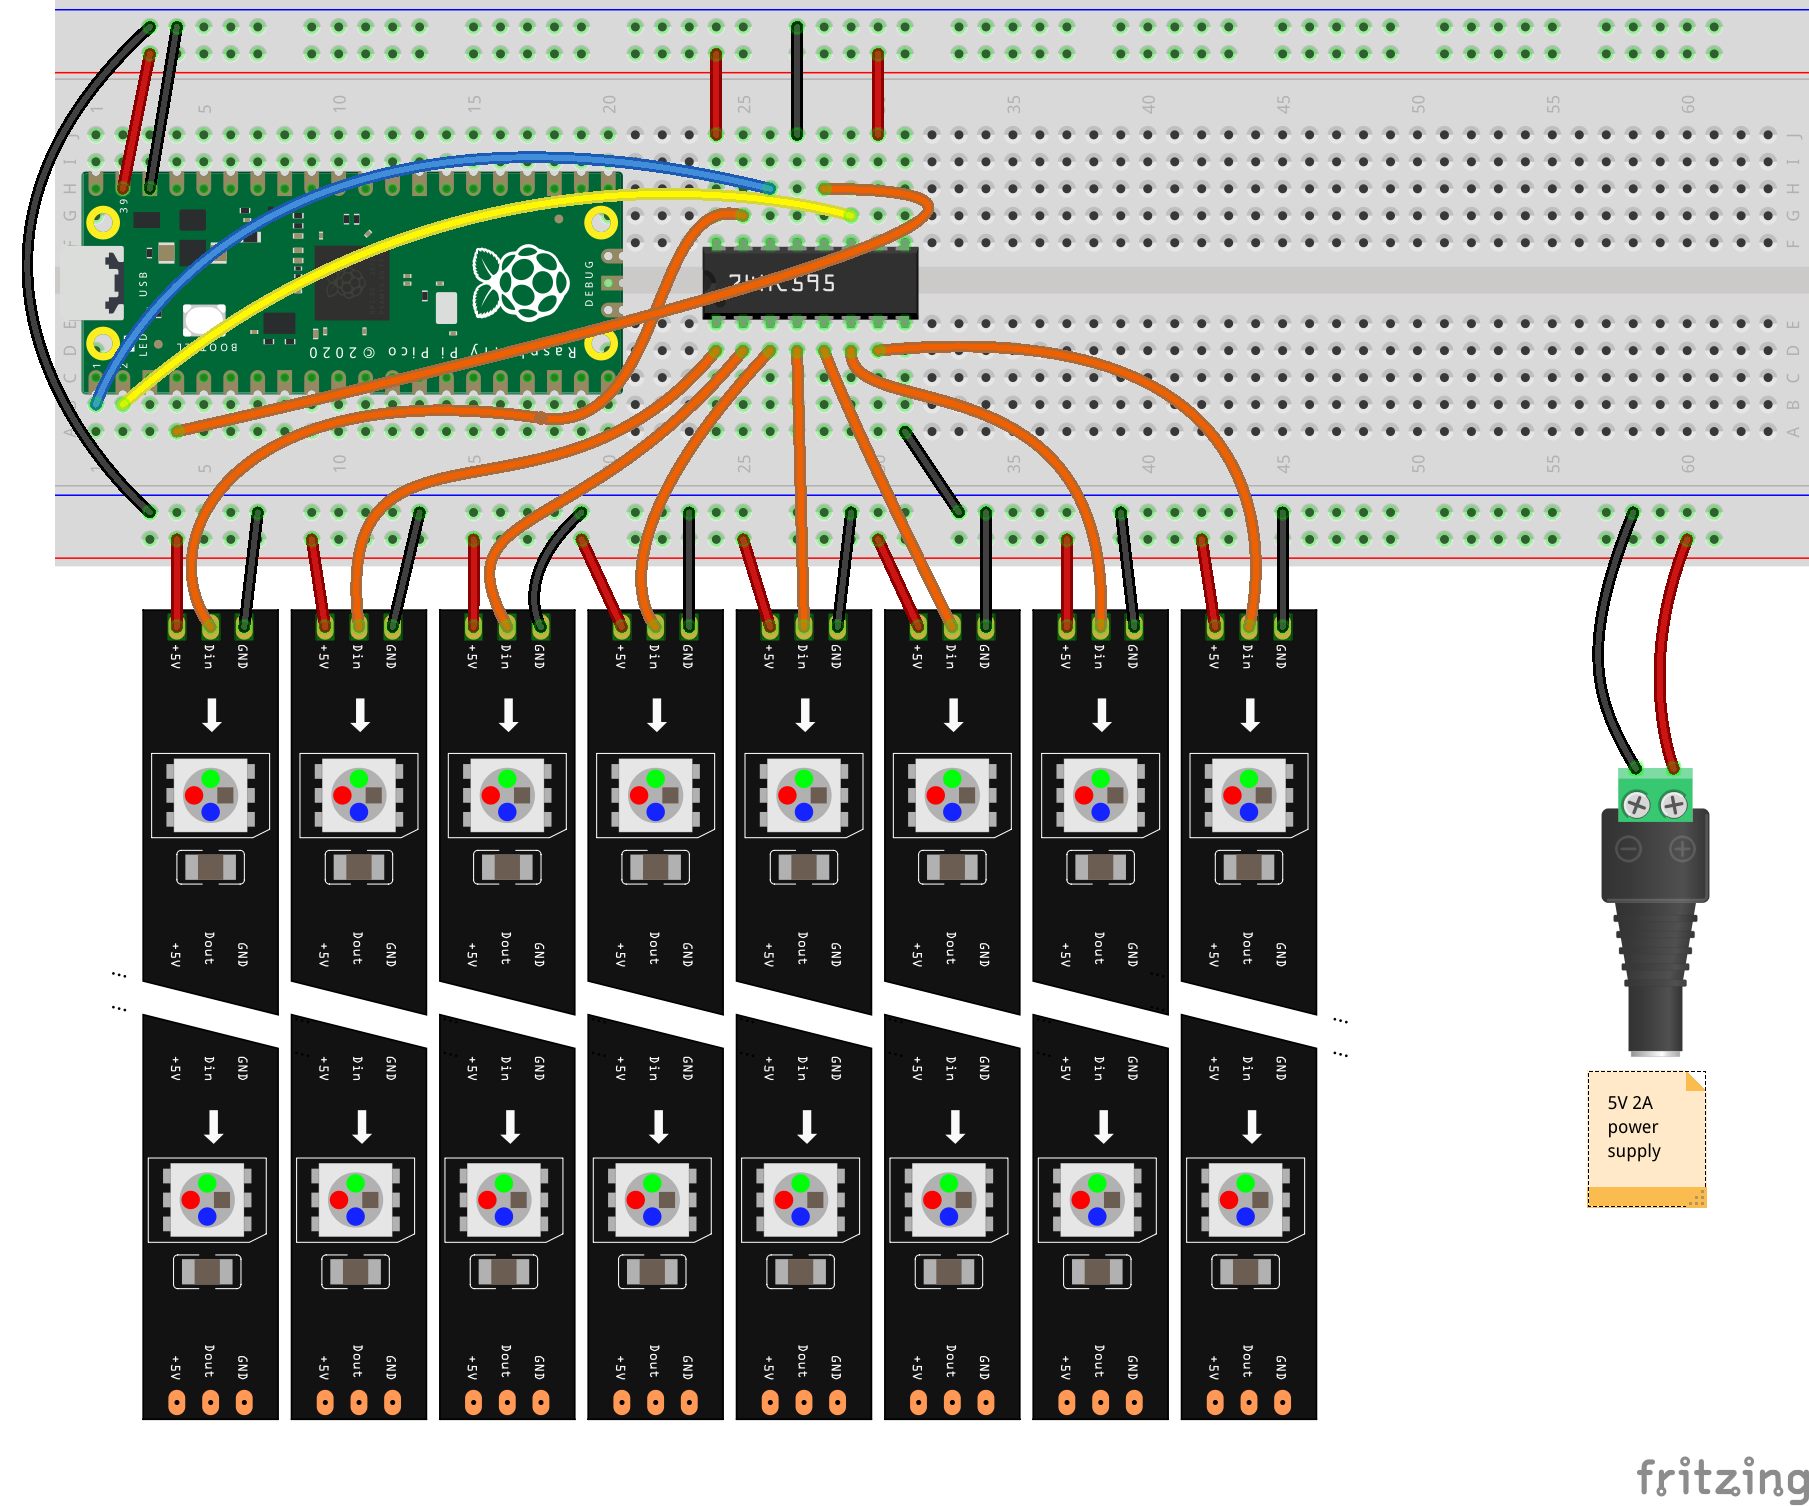 Project Wiring (see description)